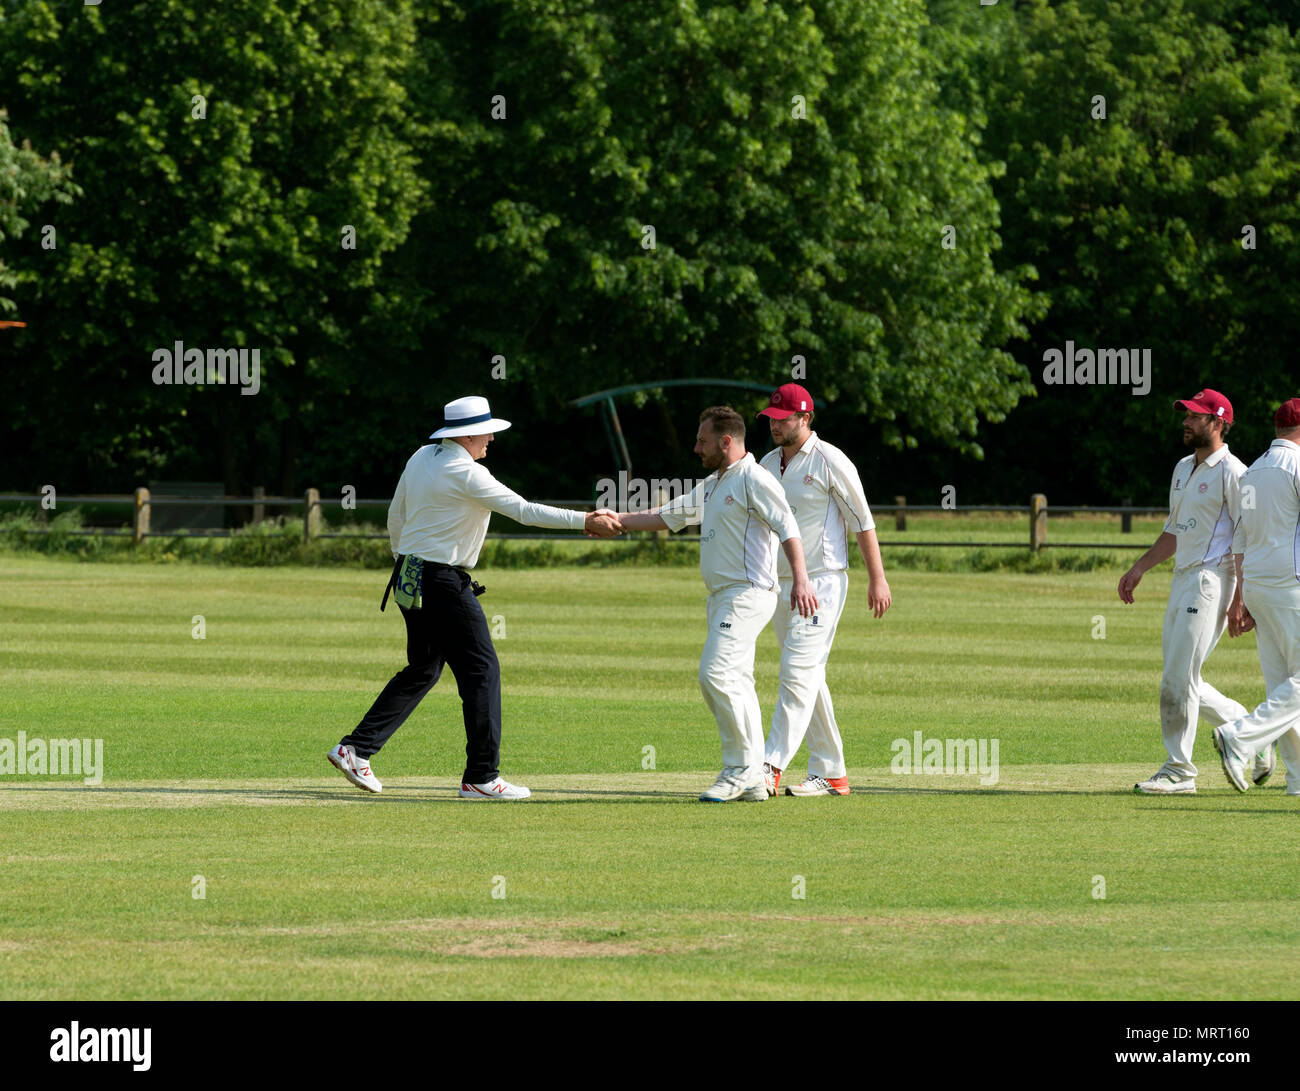 Village cricket at Wellesbourne, Warwickshire, England, UK. Player shaking hands with an umpire after the match. Stock Photo